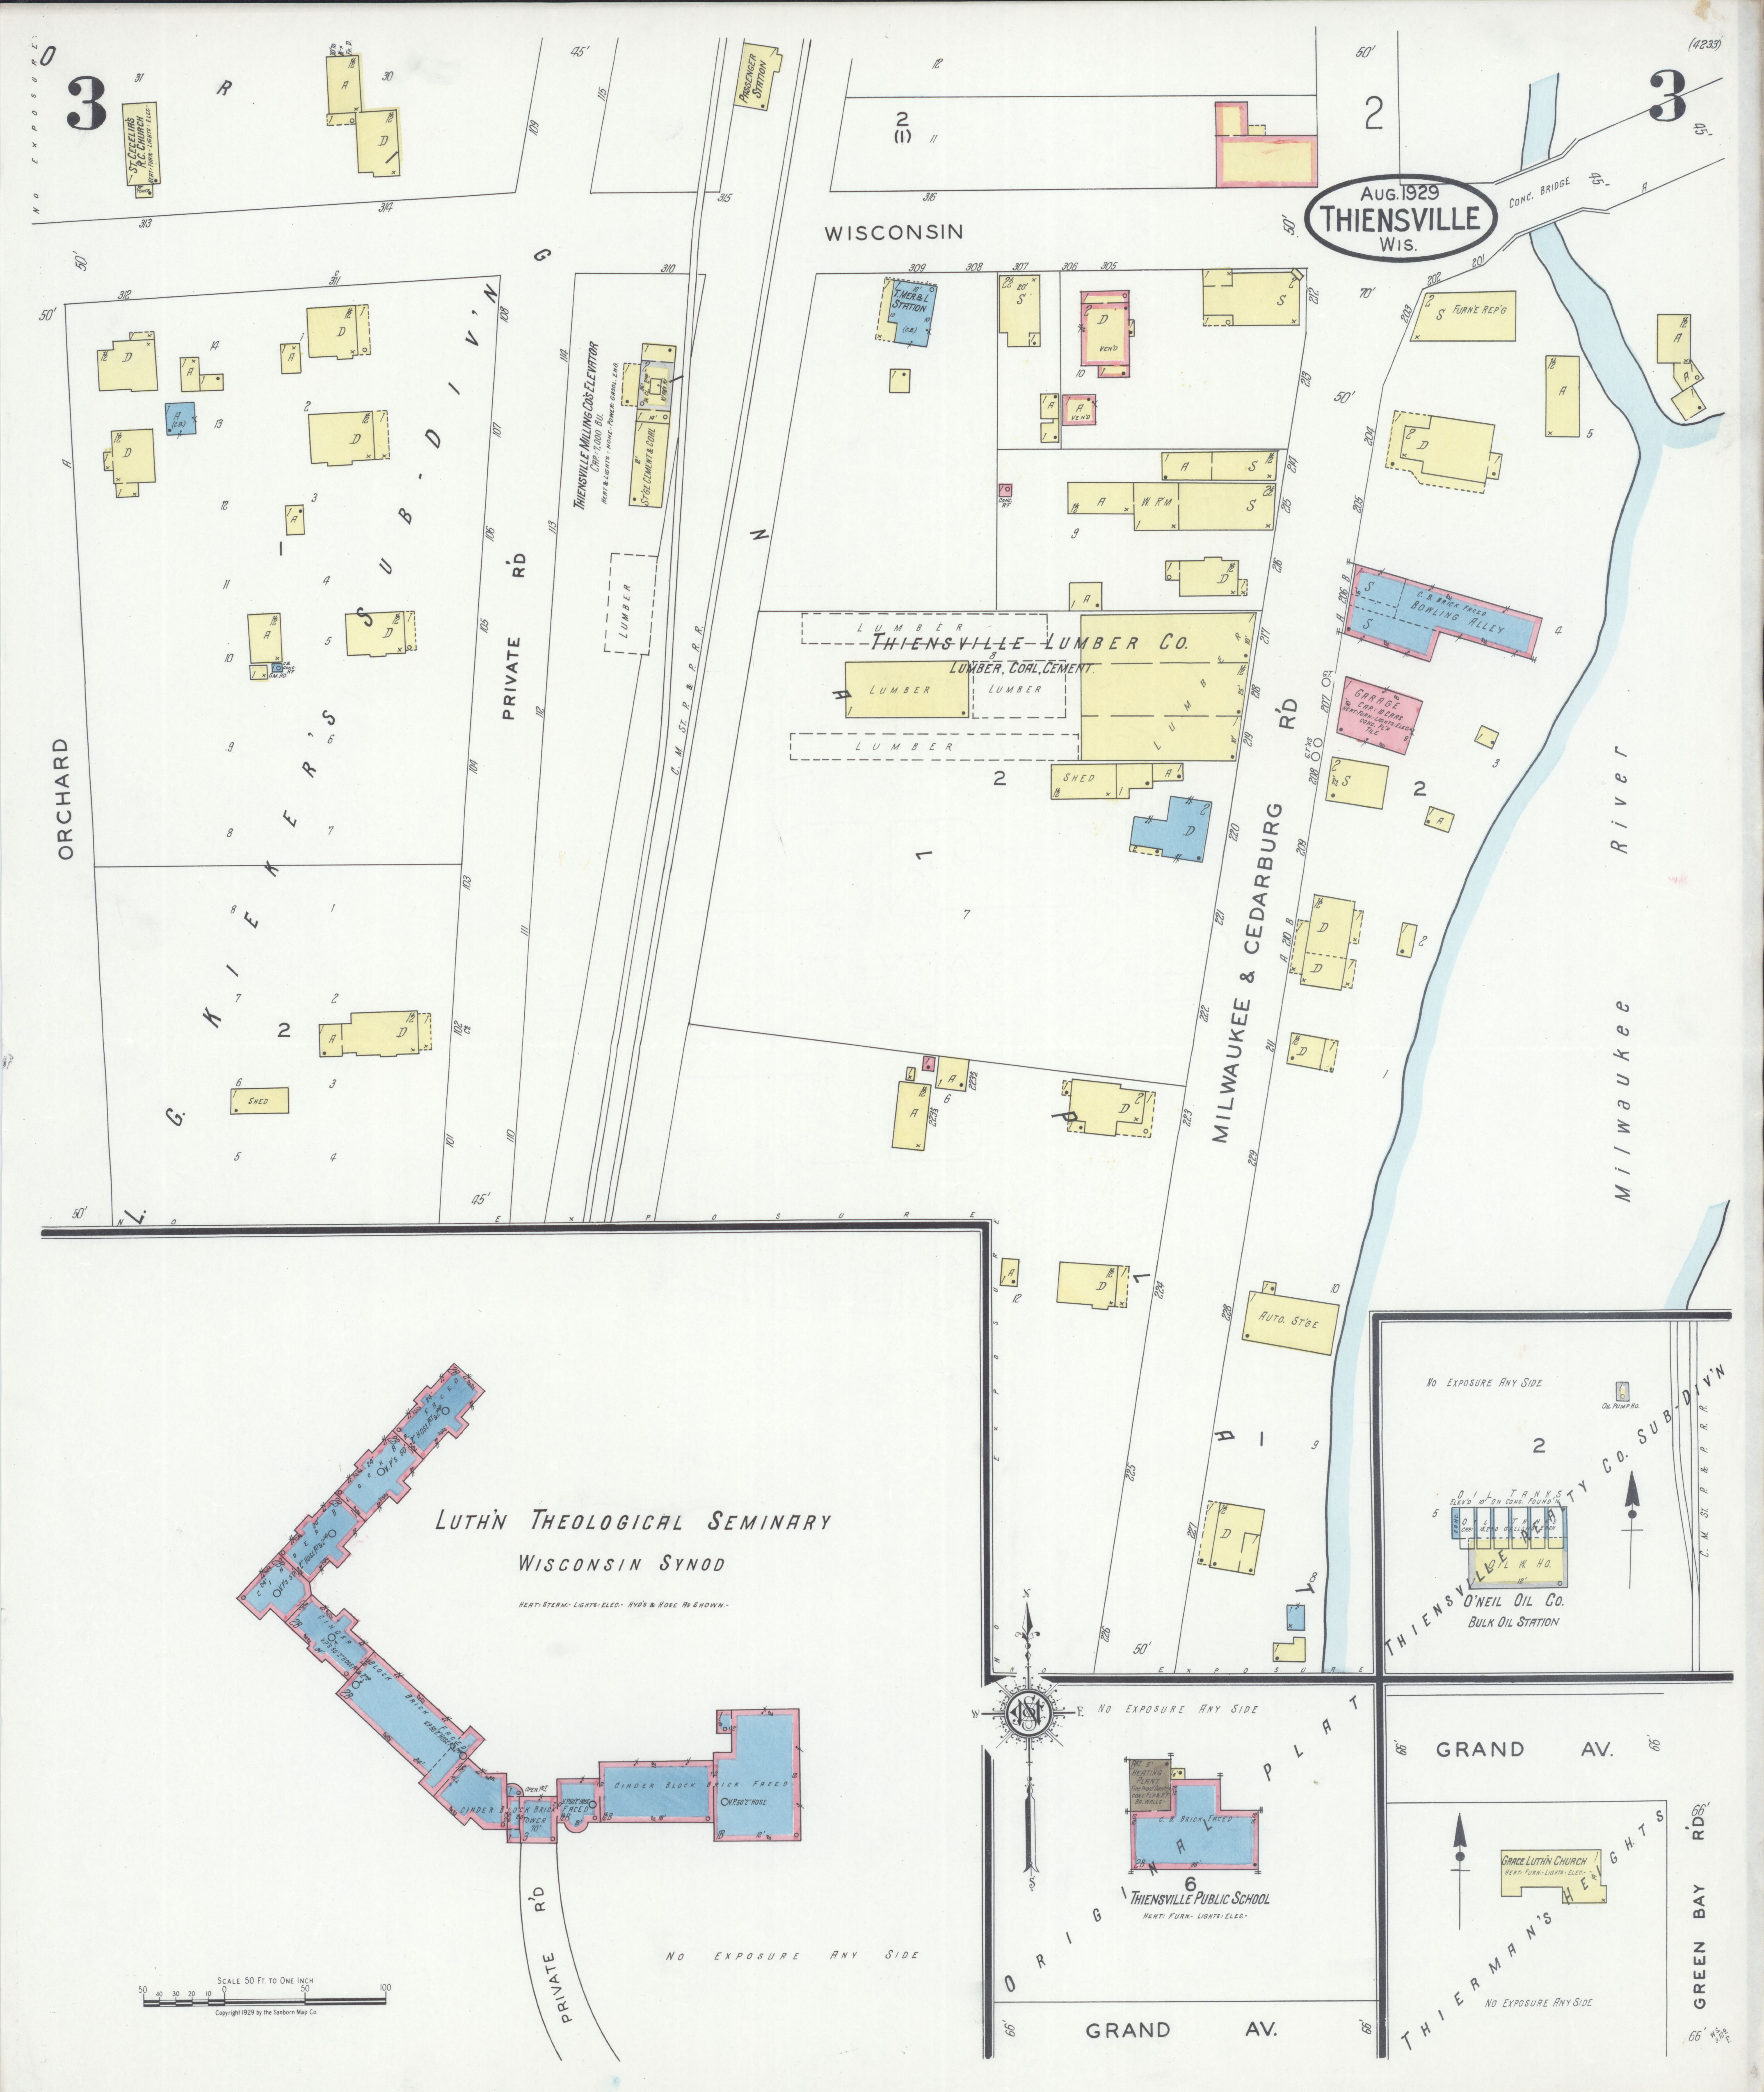 File:Sanborn Fire Insurance Map from Thiensville, Ozaukee ... on map of shorewood, map of greendale, map of wausau, map of menomonee falls, map of lake geneva, map of superior, map of pewaukee, map of elm grove, map of belgium, map of mukwonago, map of fox point, map of eau claire,